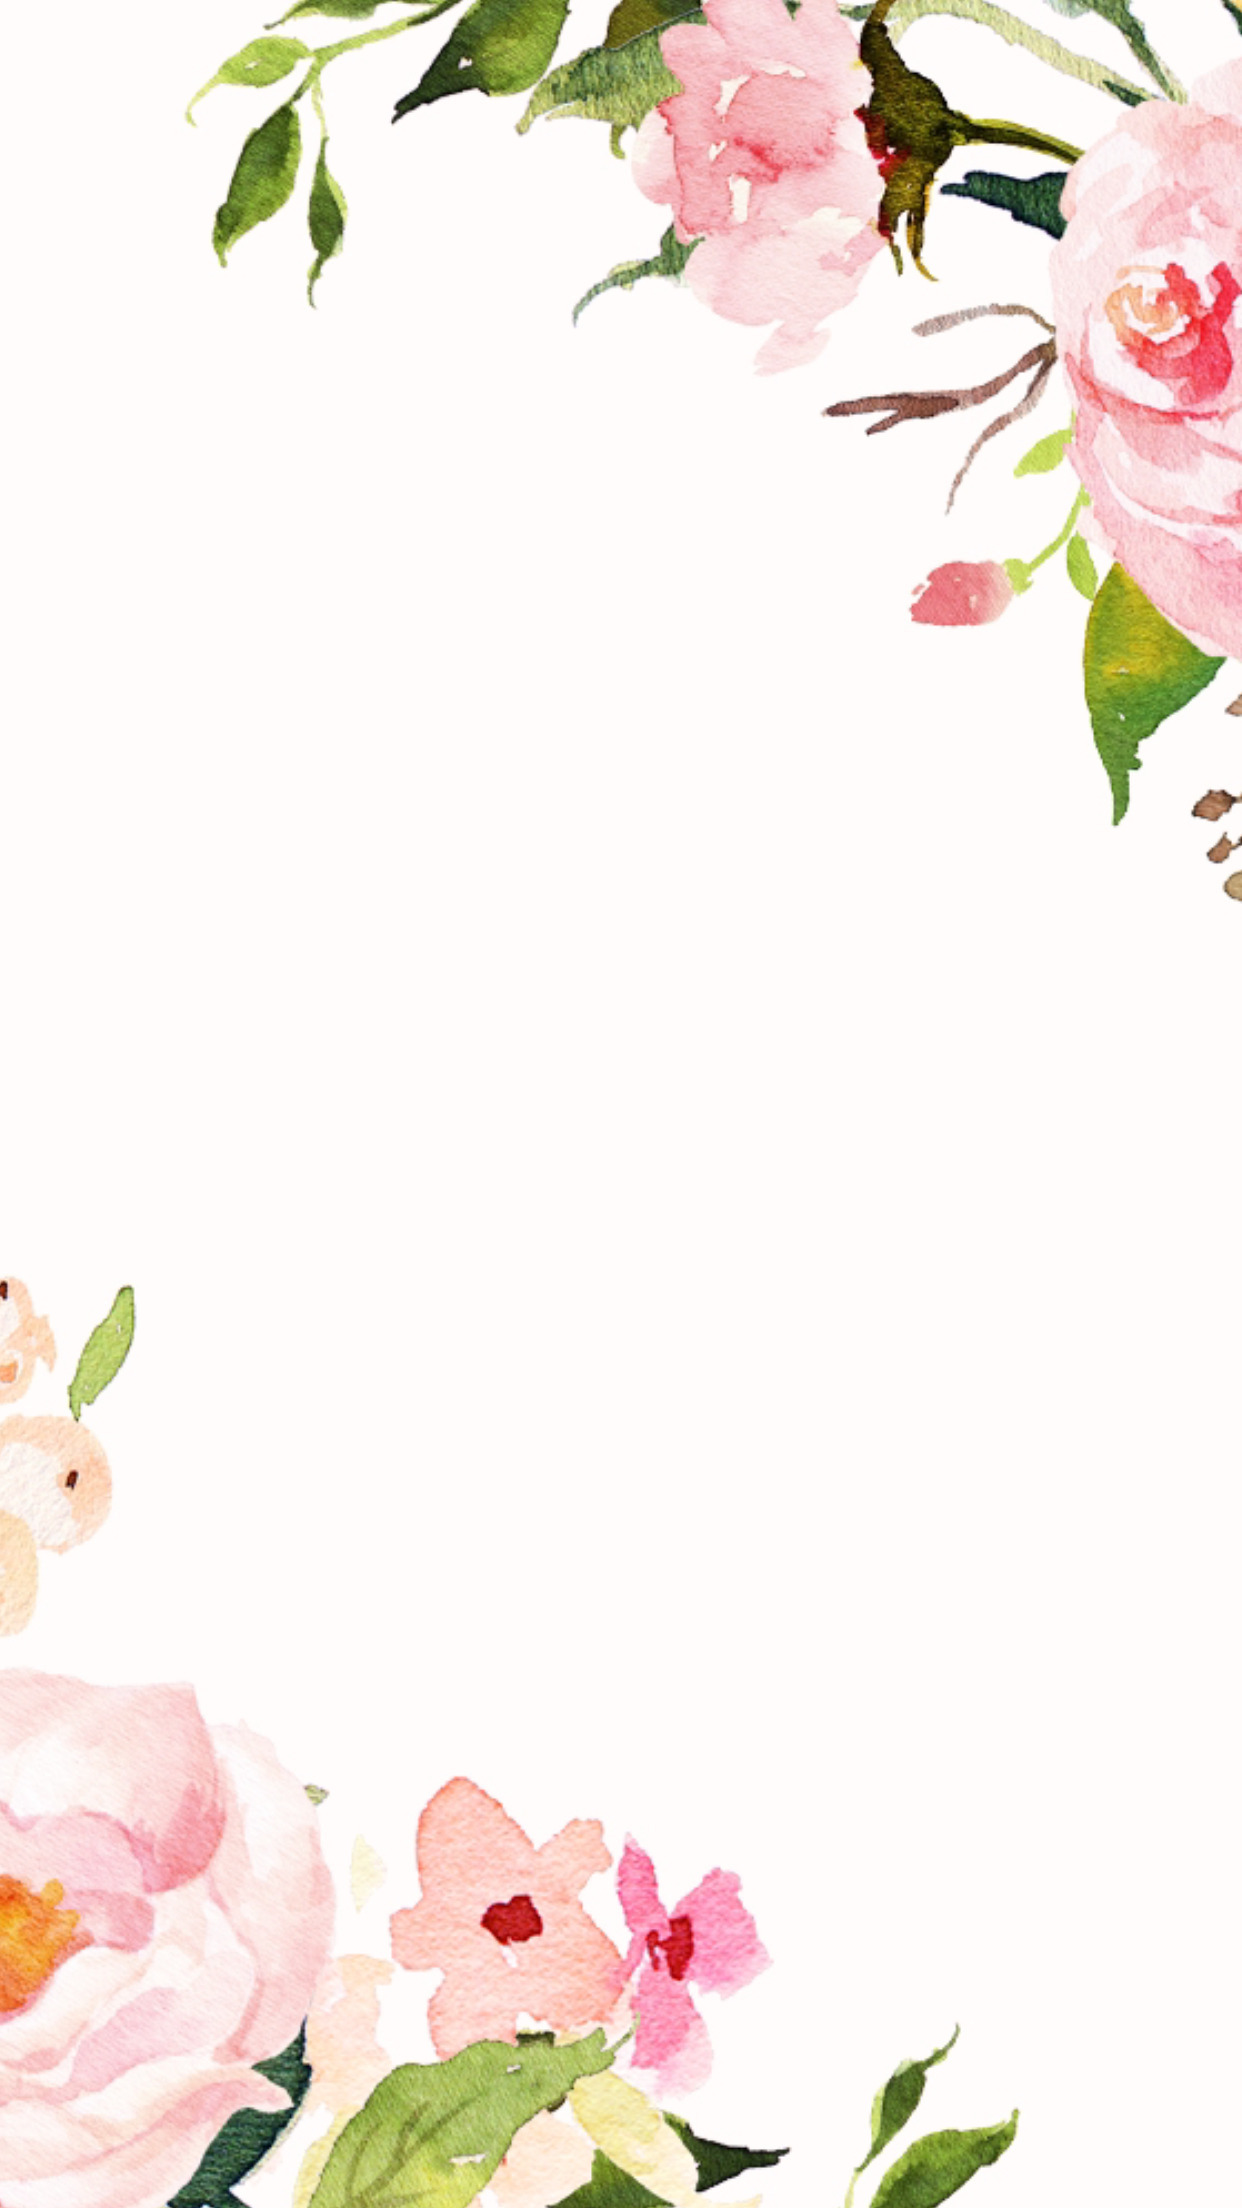 Pink White Watercolour Floral Frame Border Flowers Wallpaper Background Phone Iphone Lock Screen